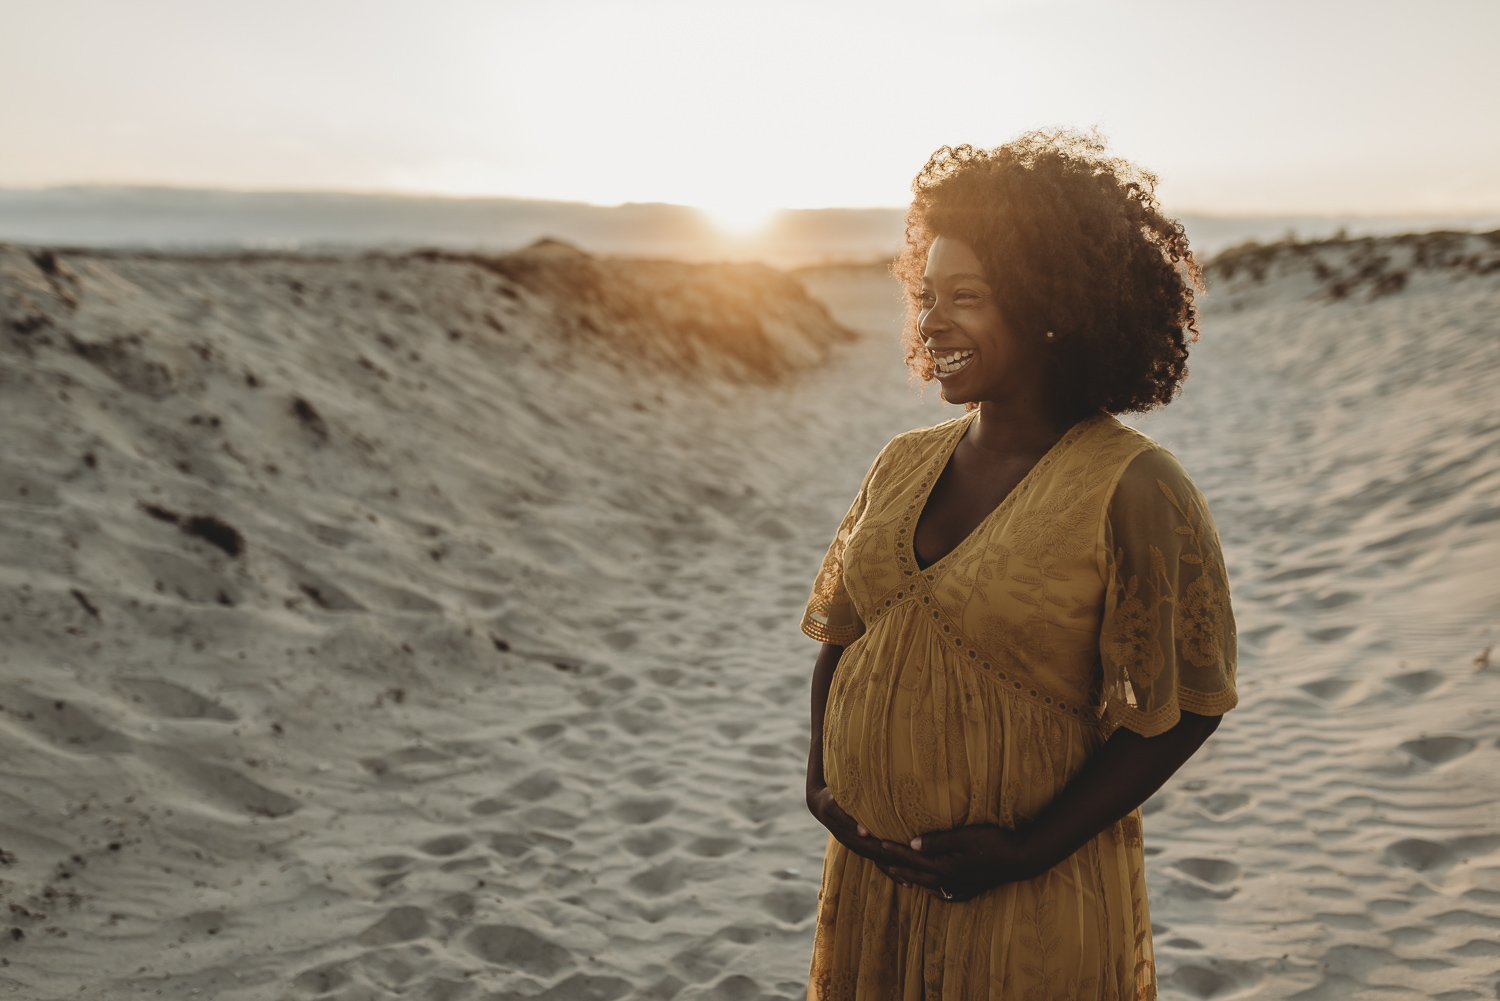 sandiego_family_photography_beach_lifestyle_newborn_maternity-94.jpg